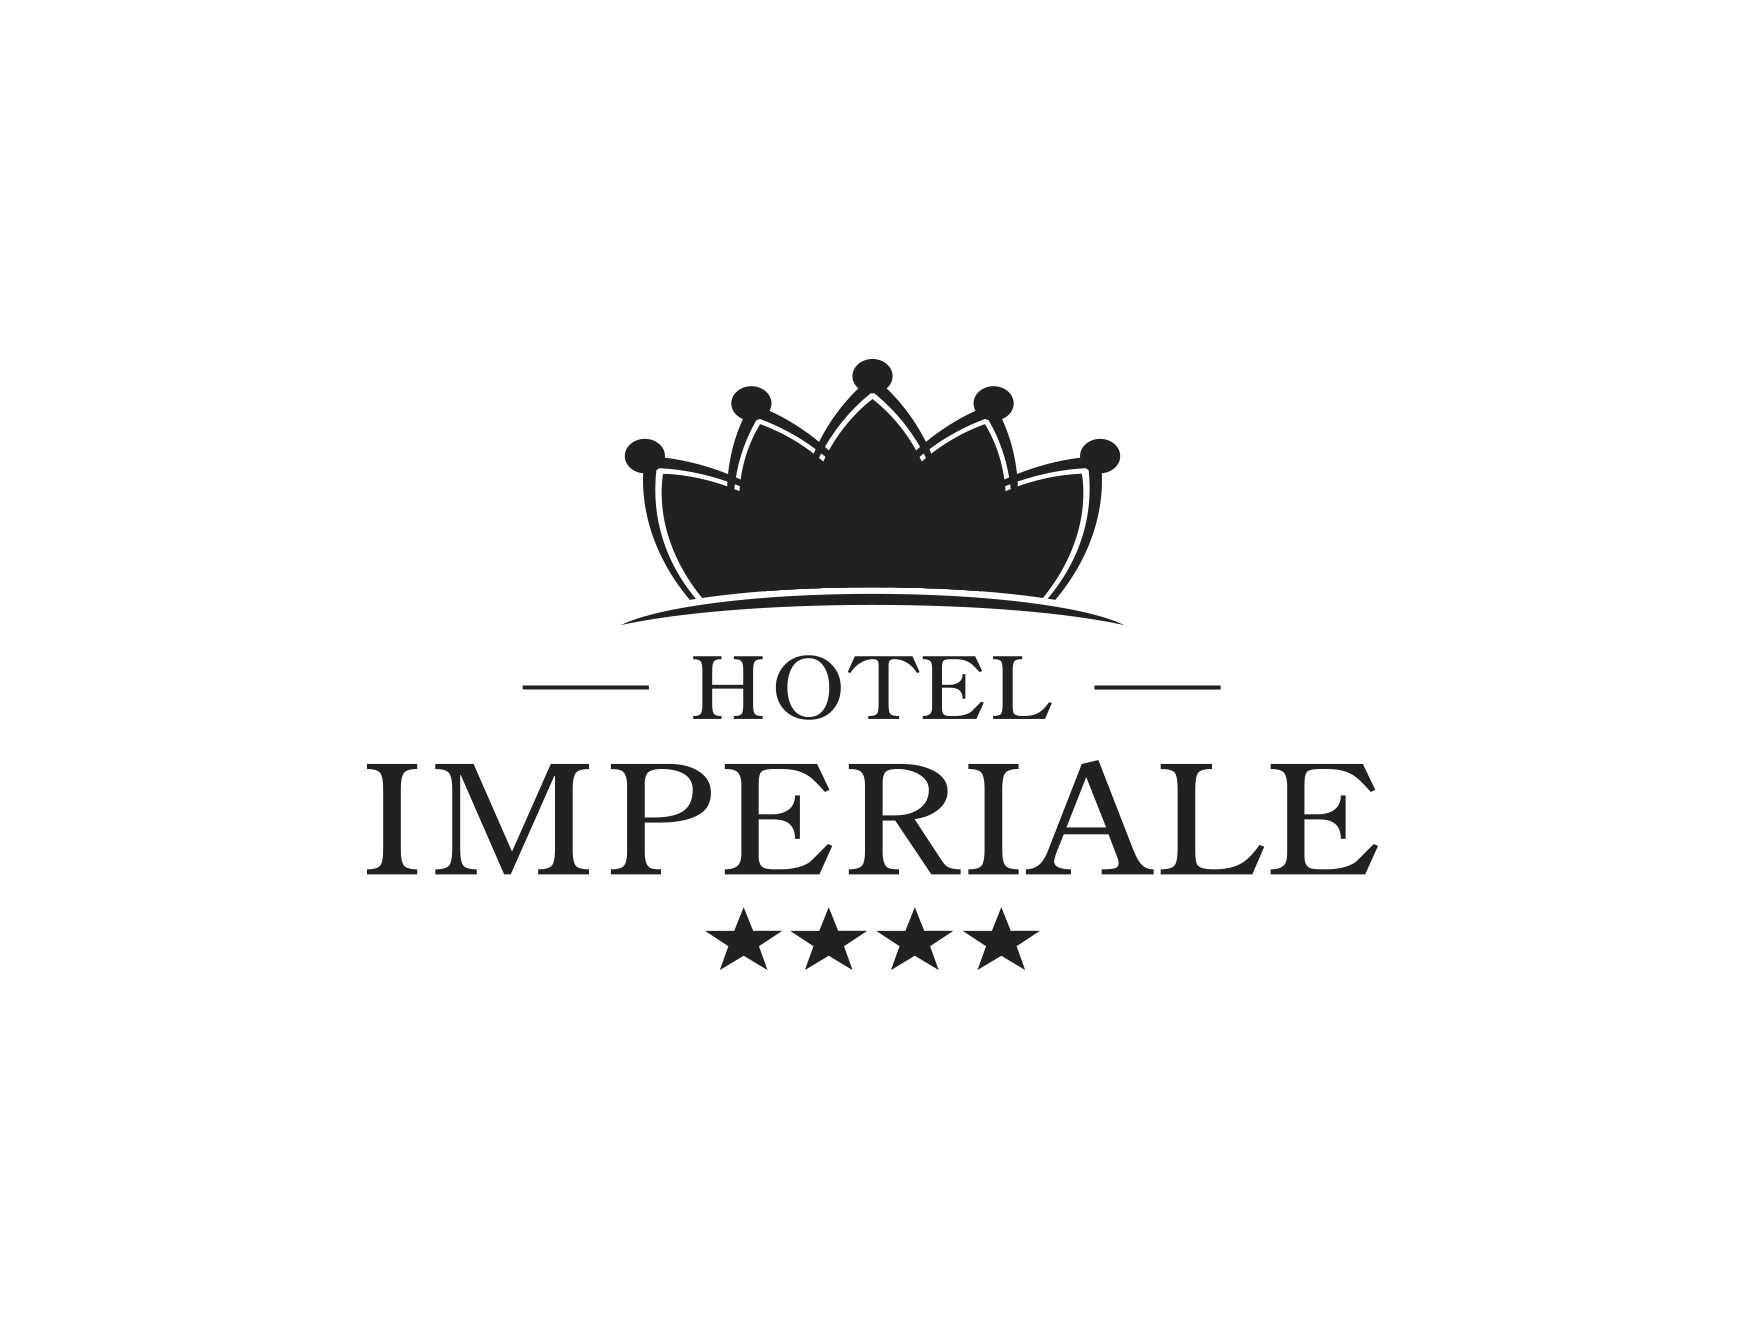 Logo Hotel Imperiale